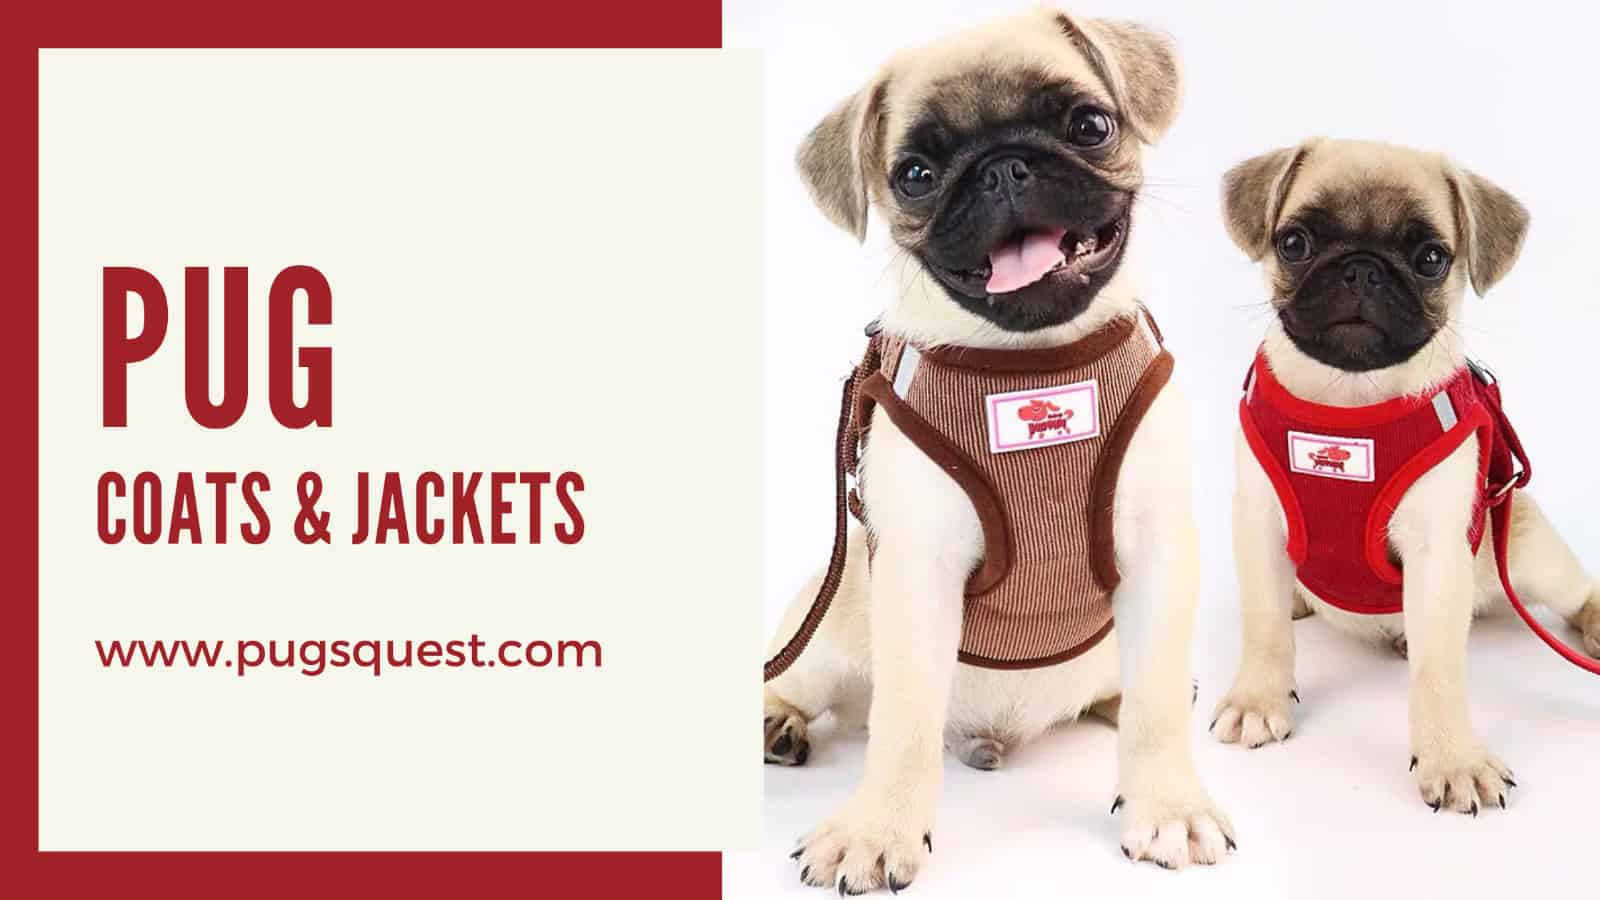 pug coats and jackets